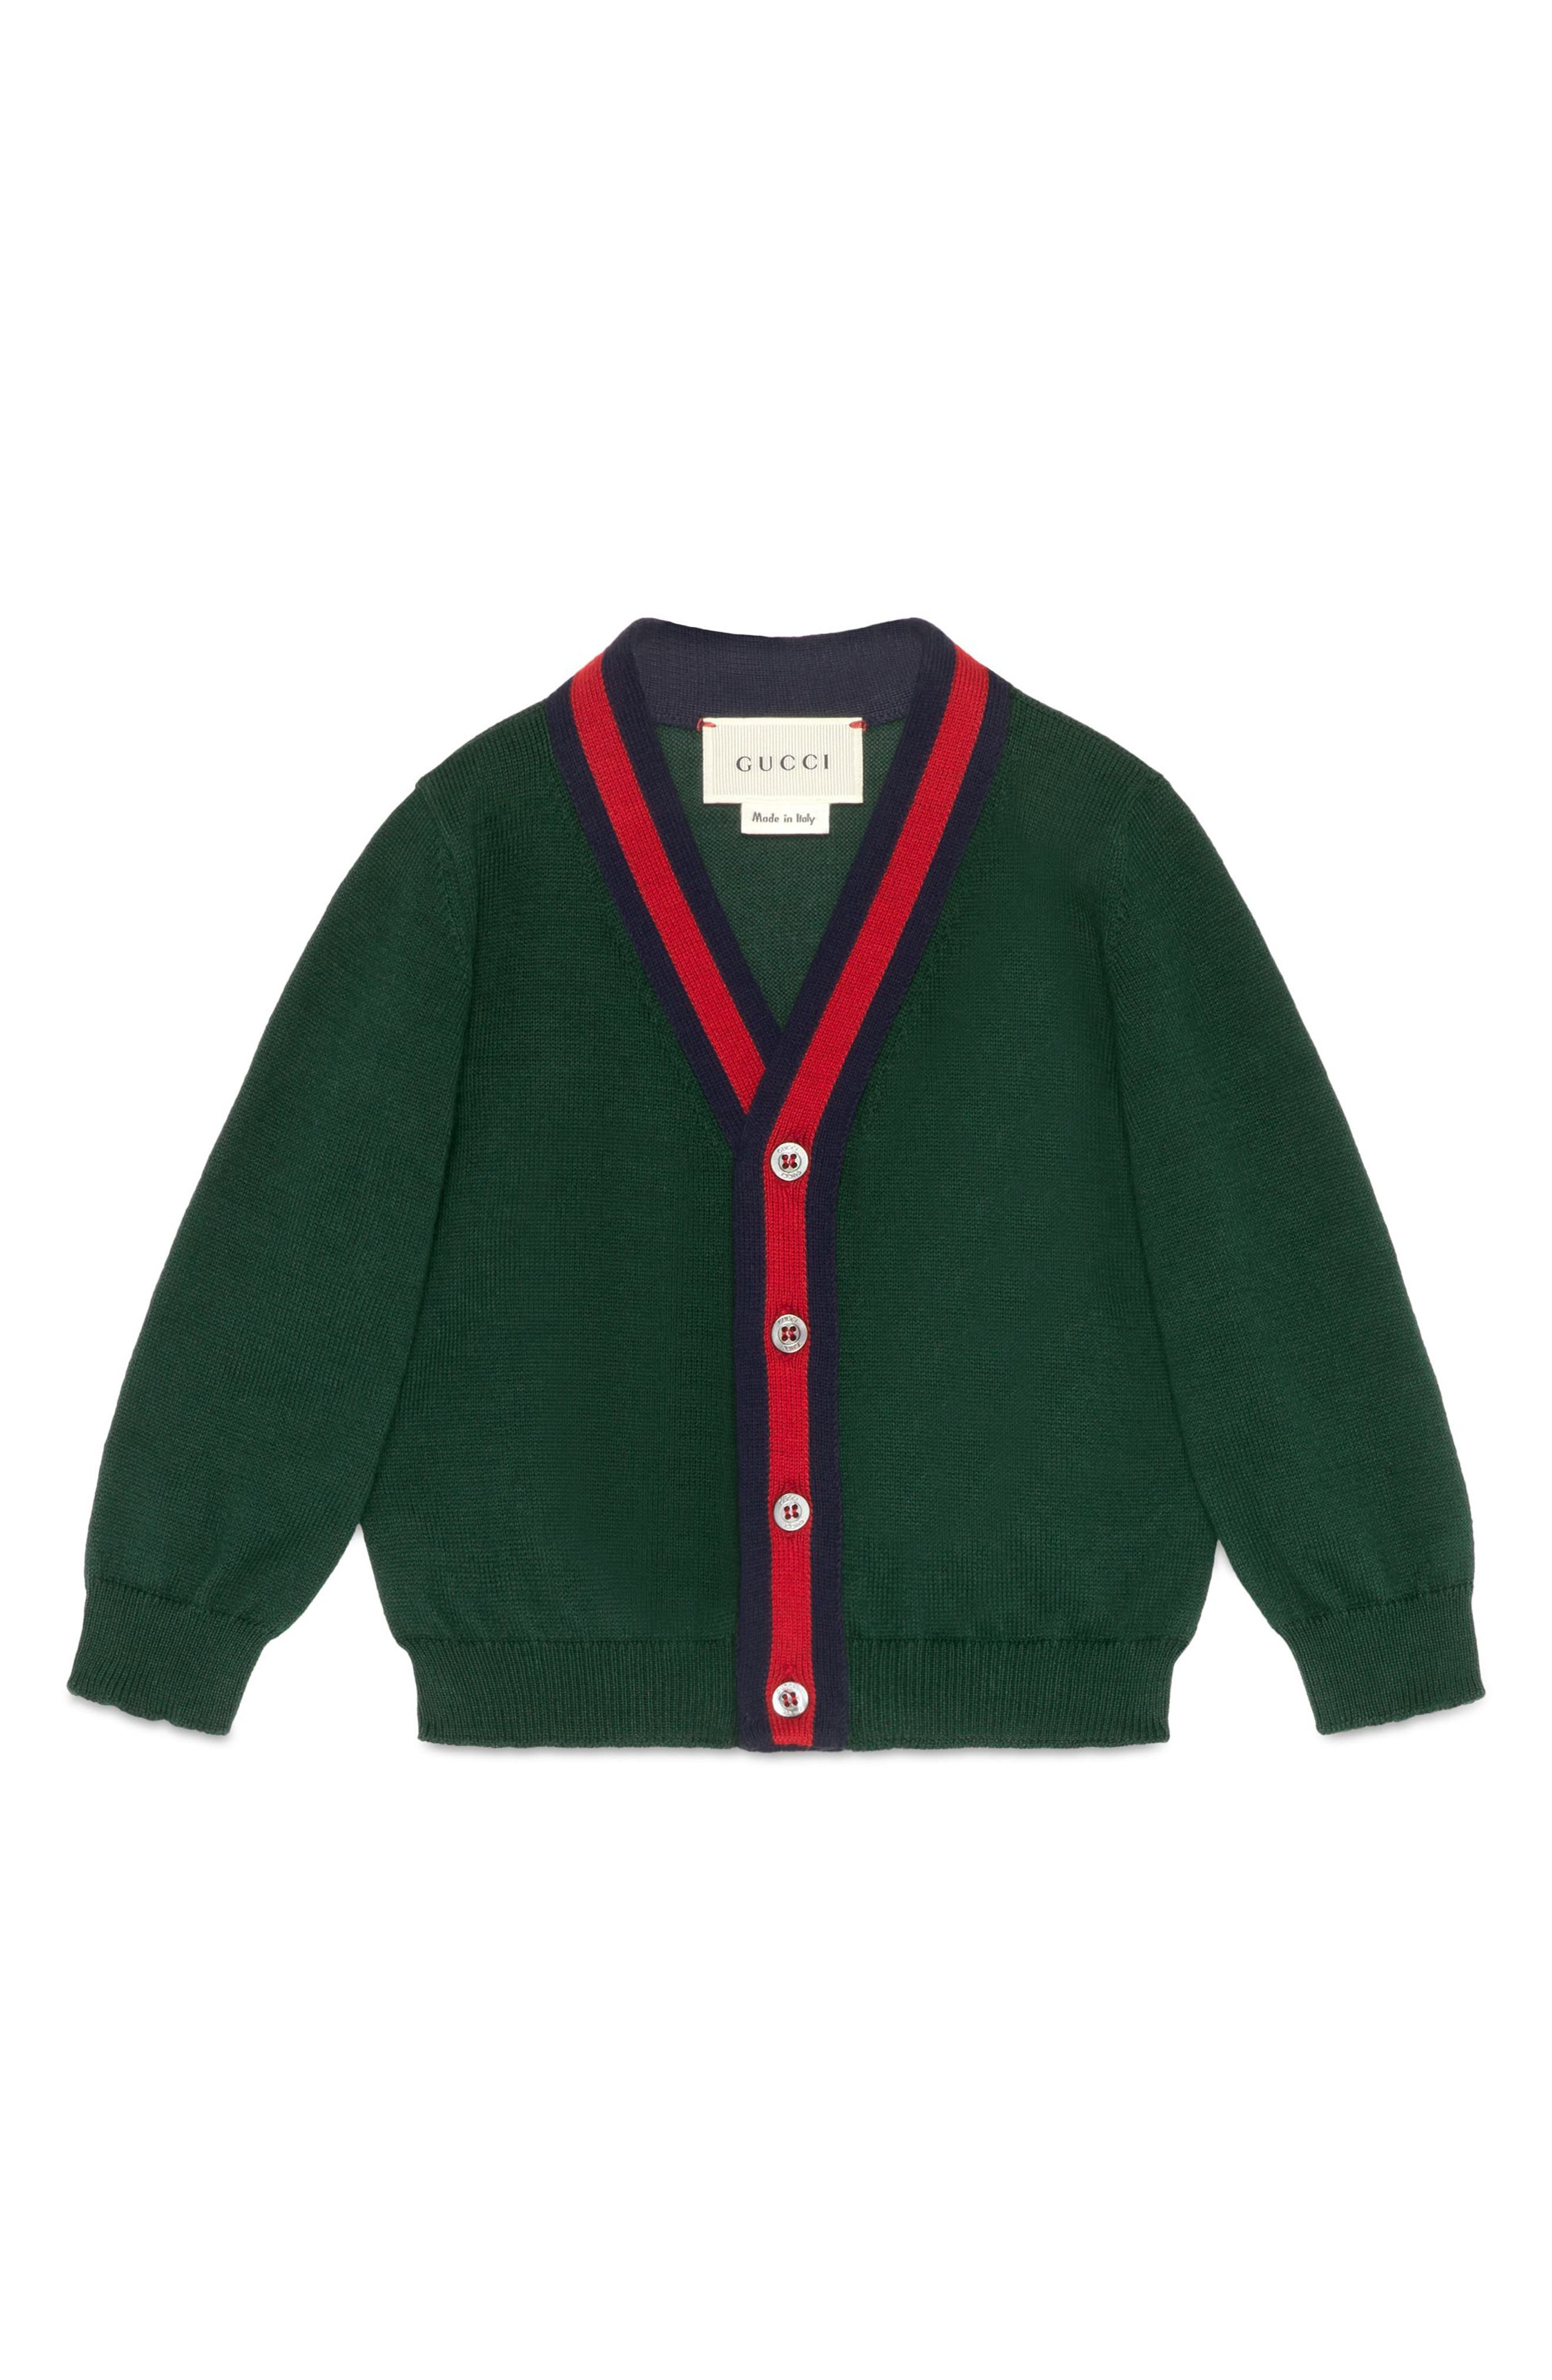 Knit Cotton Cardigan,                         Main,                         color, Gucci Green